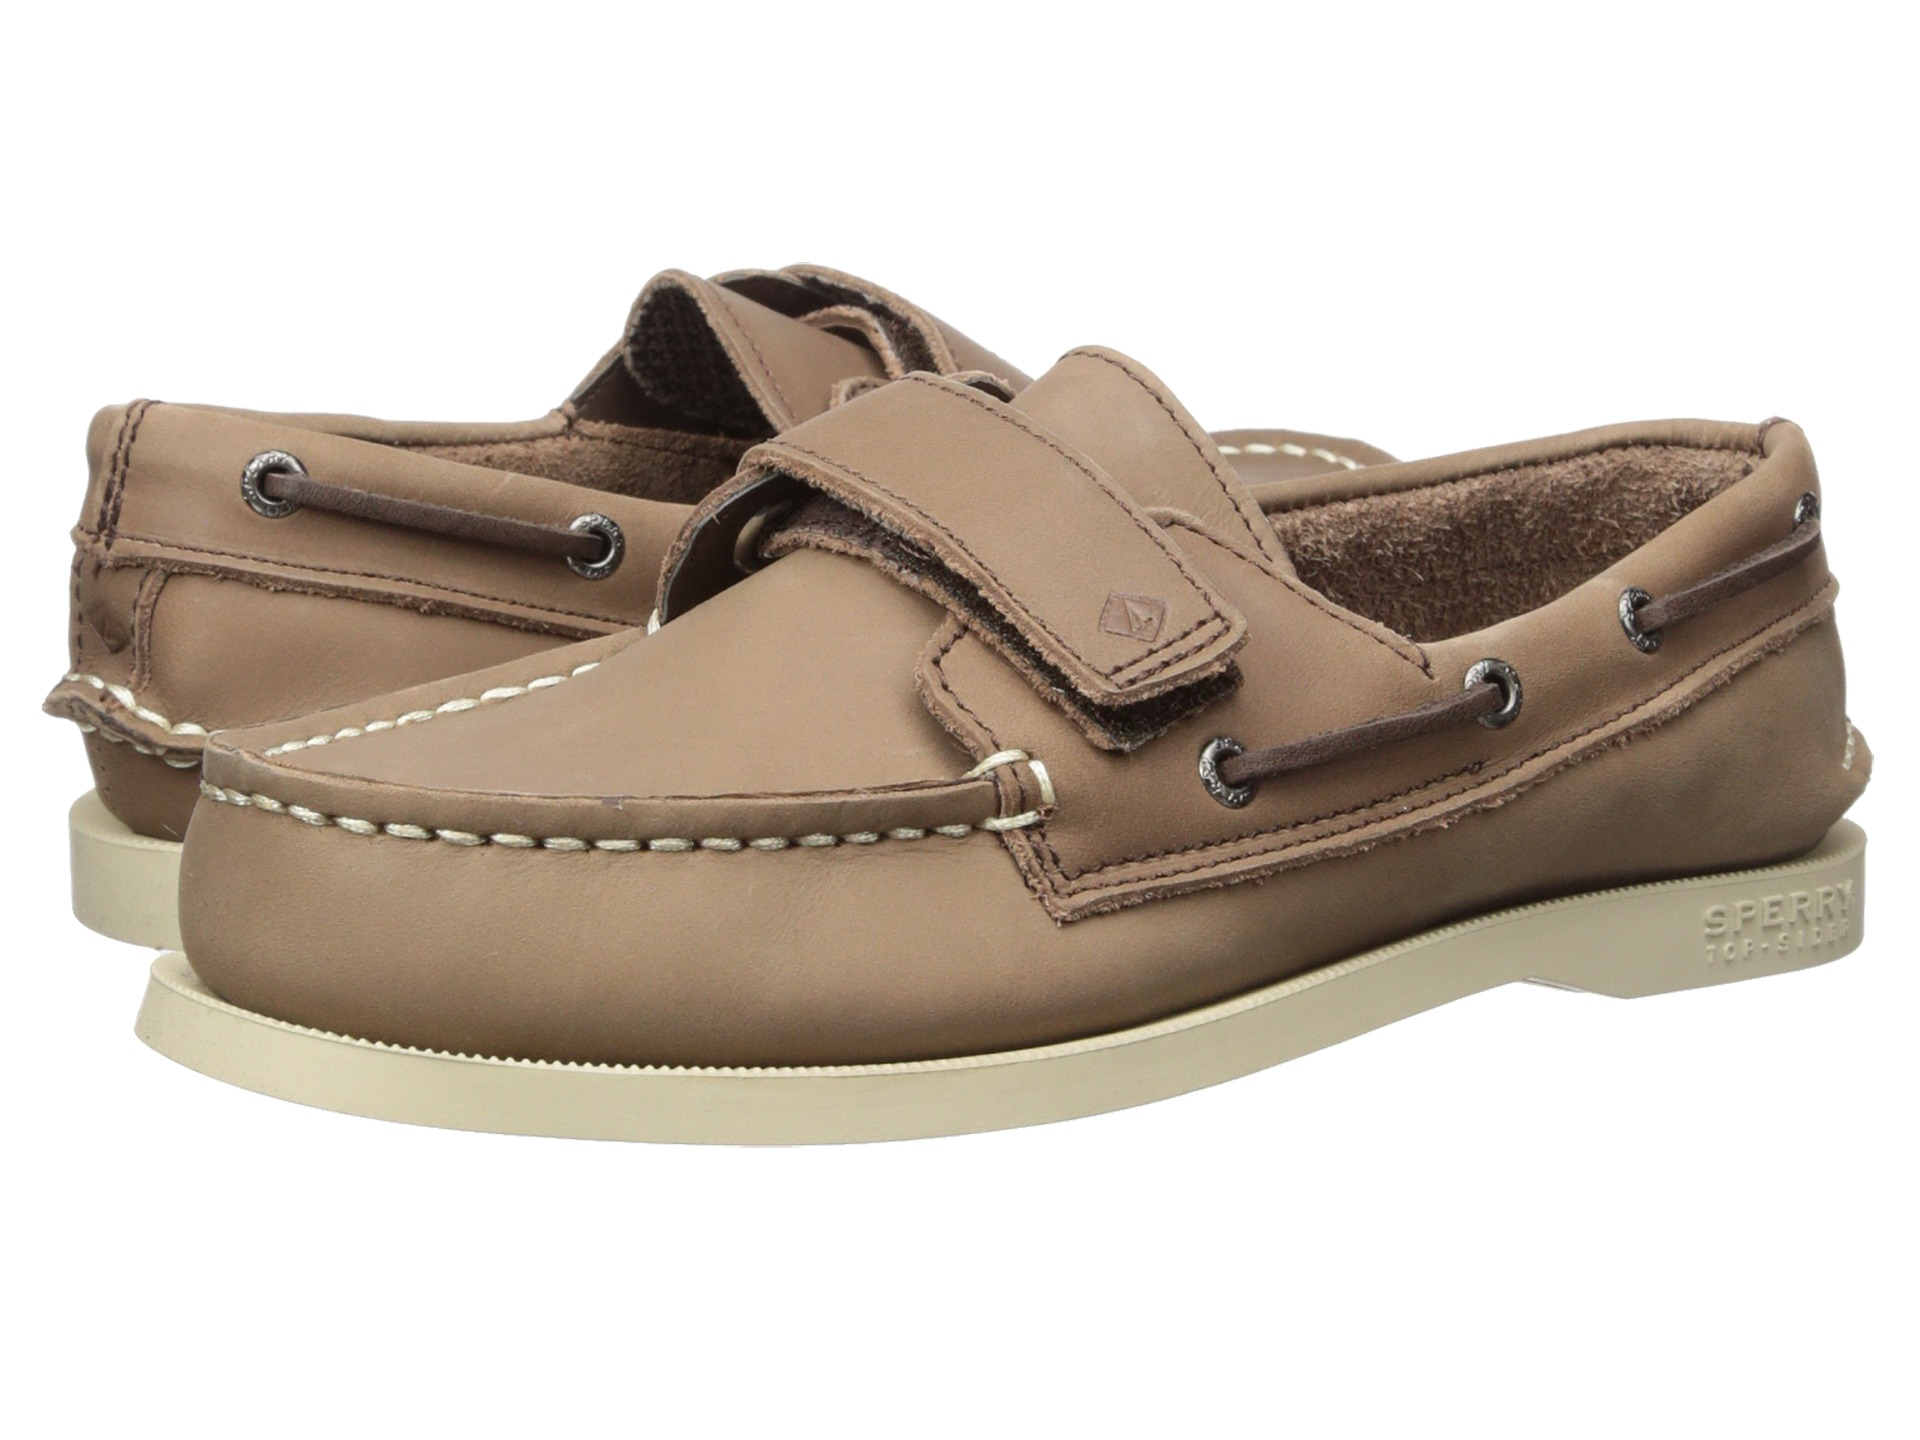 Kids' Sperry Lace-Up Sneakers is rated out of 5 by 2. Rated 5 out of 5 by Annanpn from great shoes I bought these for my grandson. My daughter says they are great, good quality and cute!